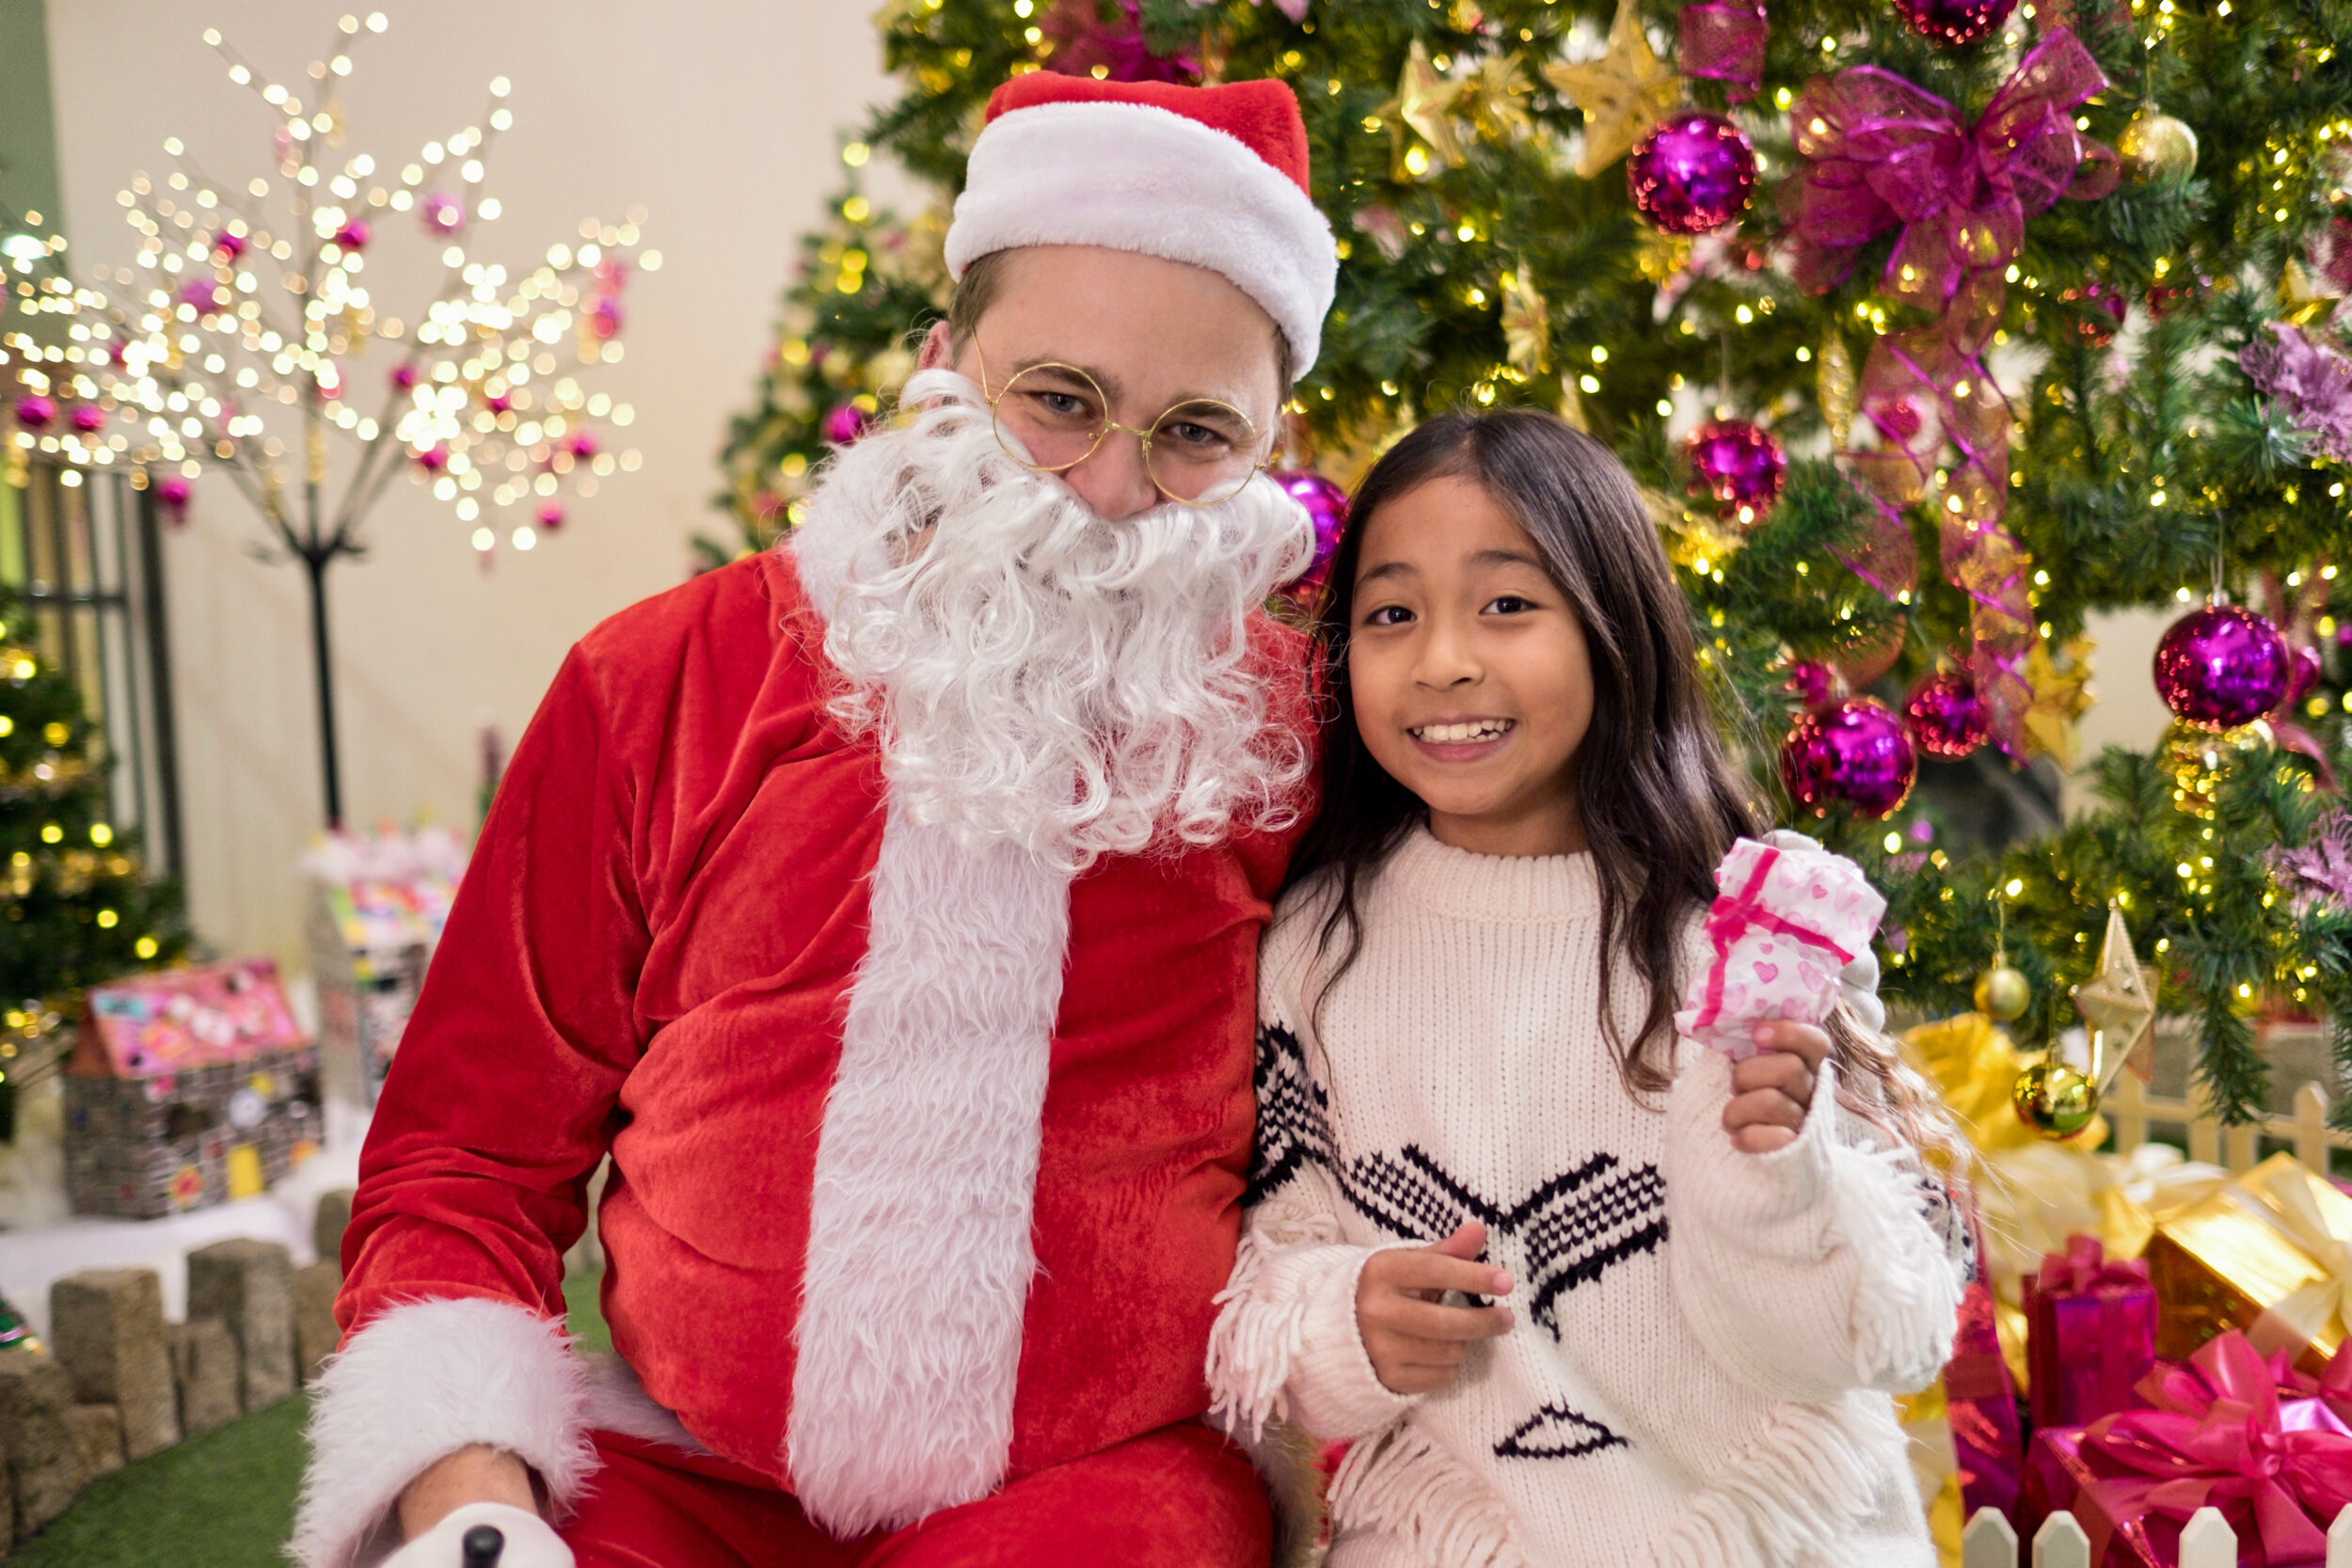 Photoshoot with Santa Clause-861.jpg